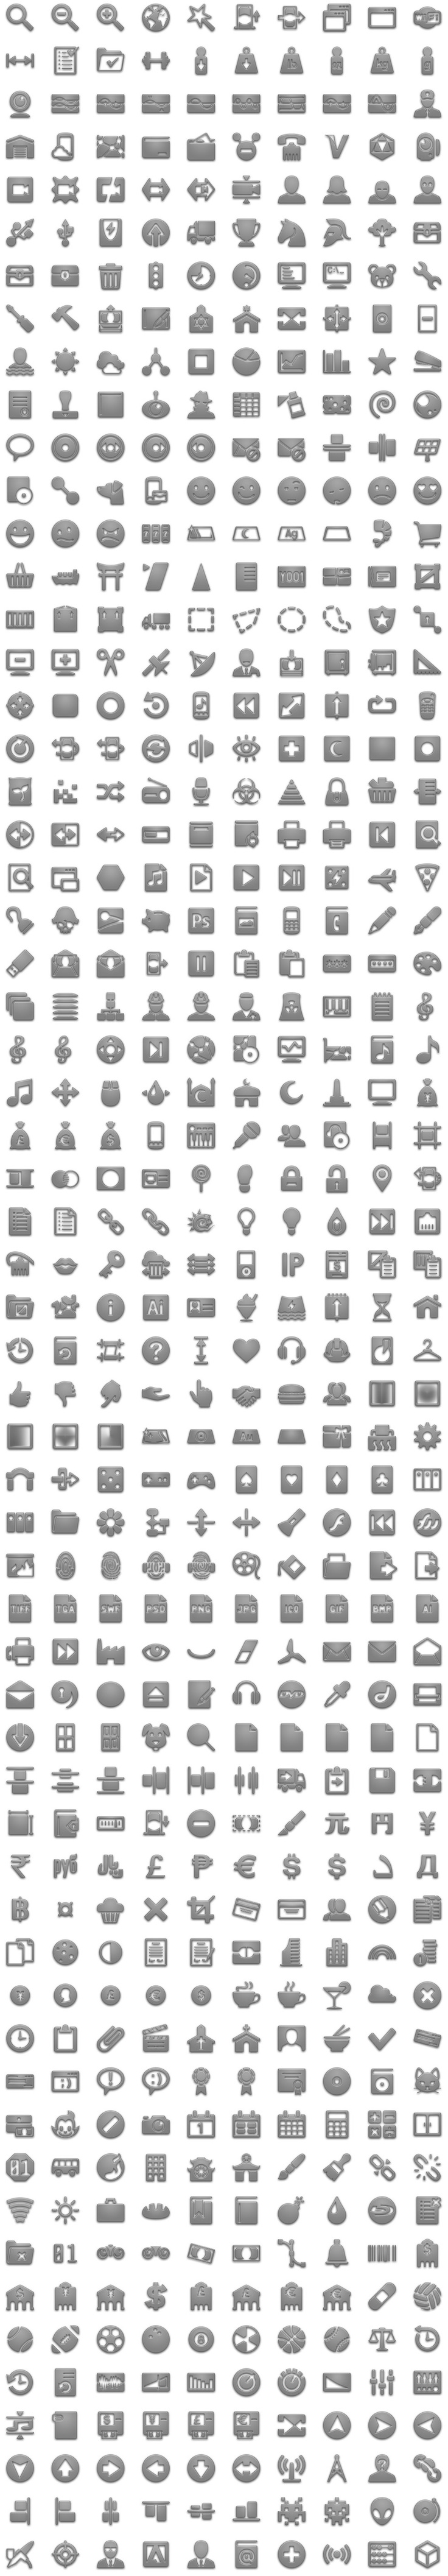 The most complete android icons collection, with roughly 15000 unique android icons, including ALL sizes and variations and following android standards.